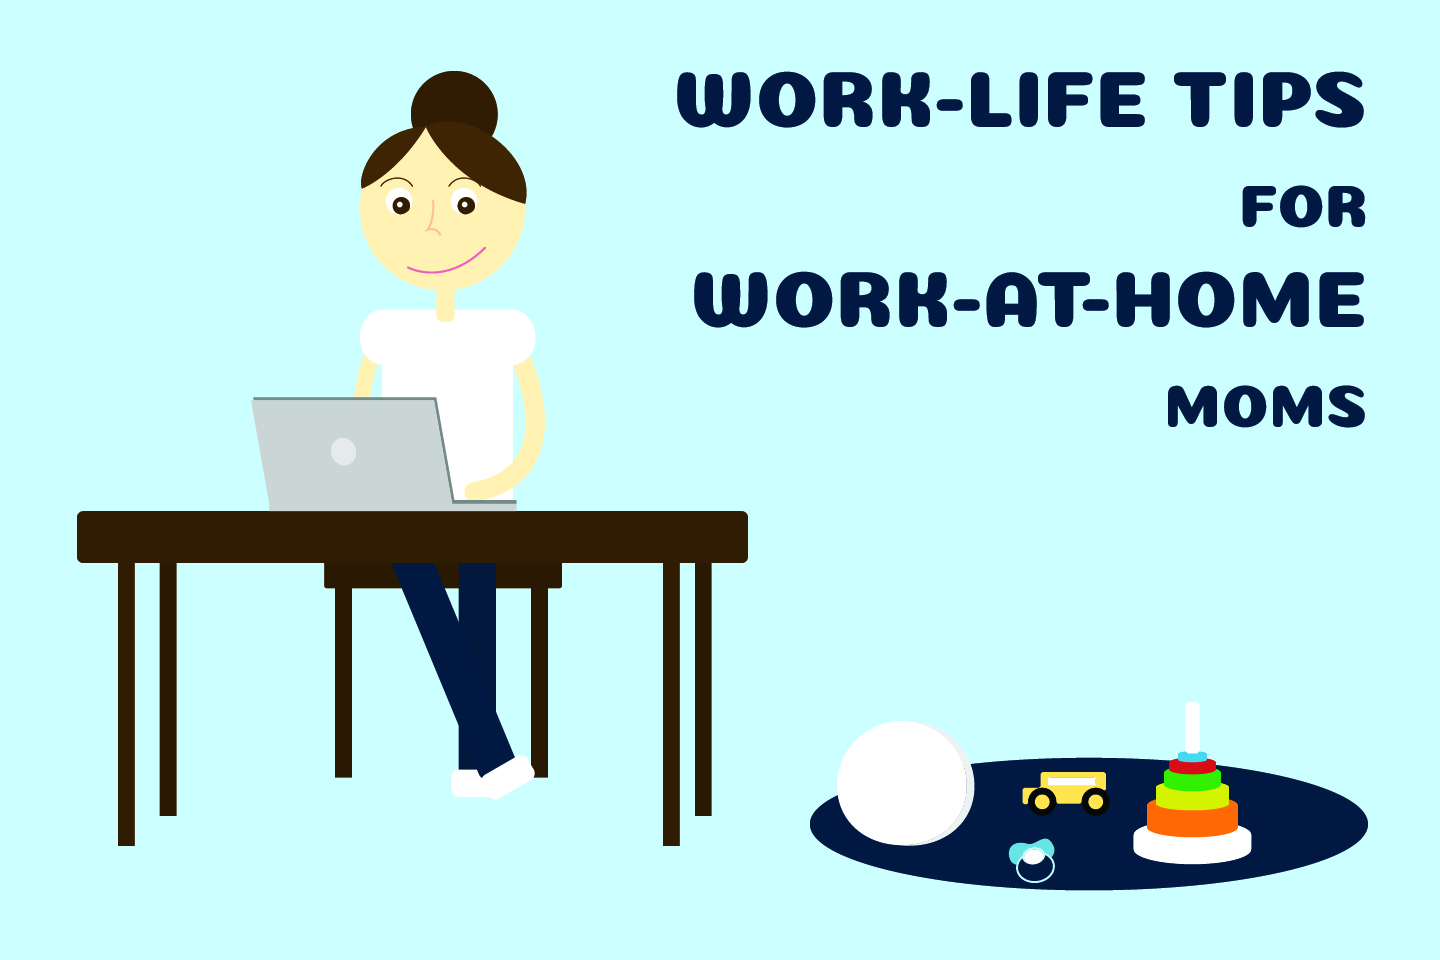 Work-life tips for work-at-home moms